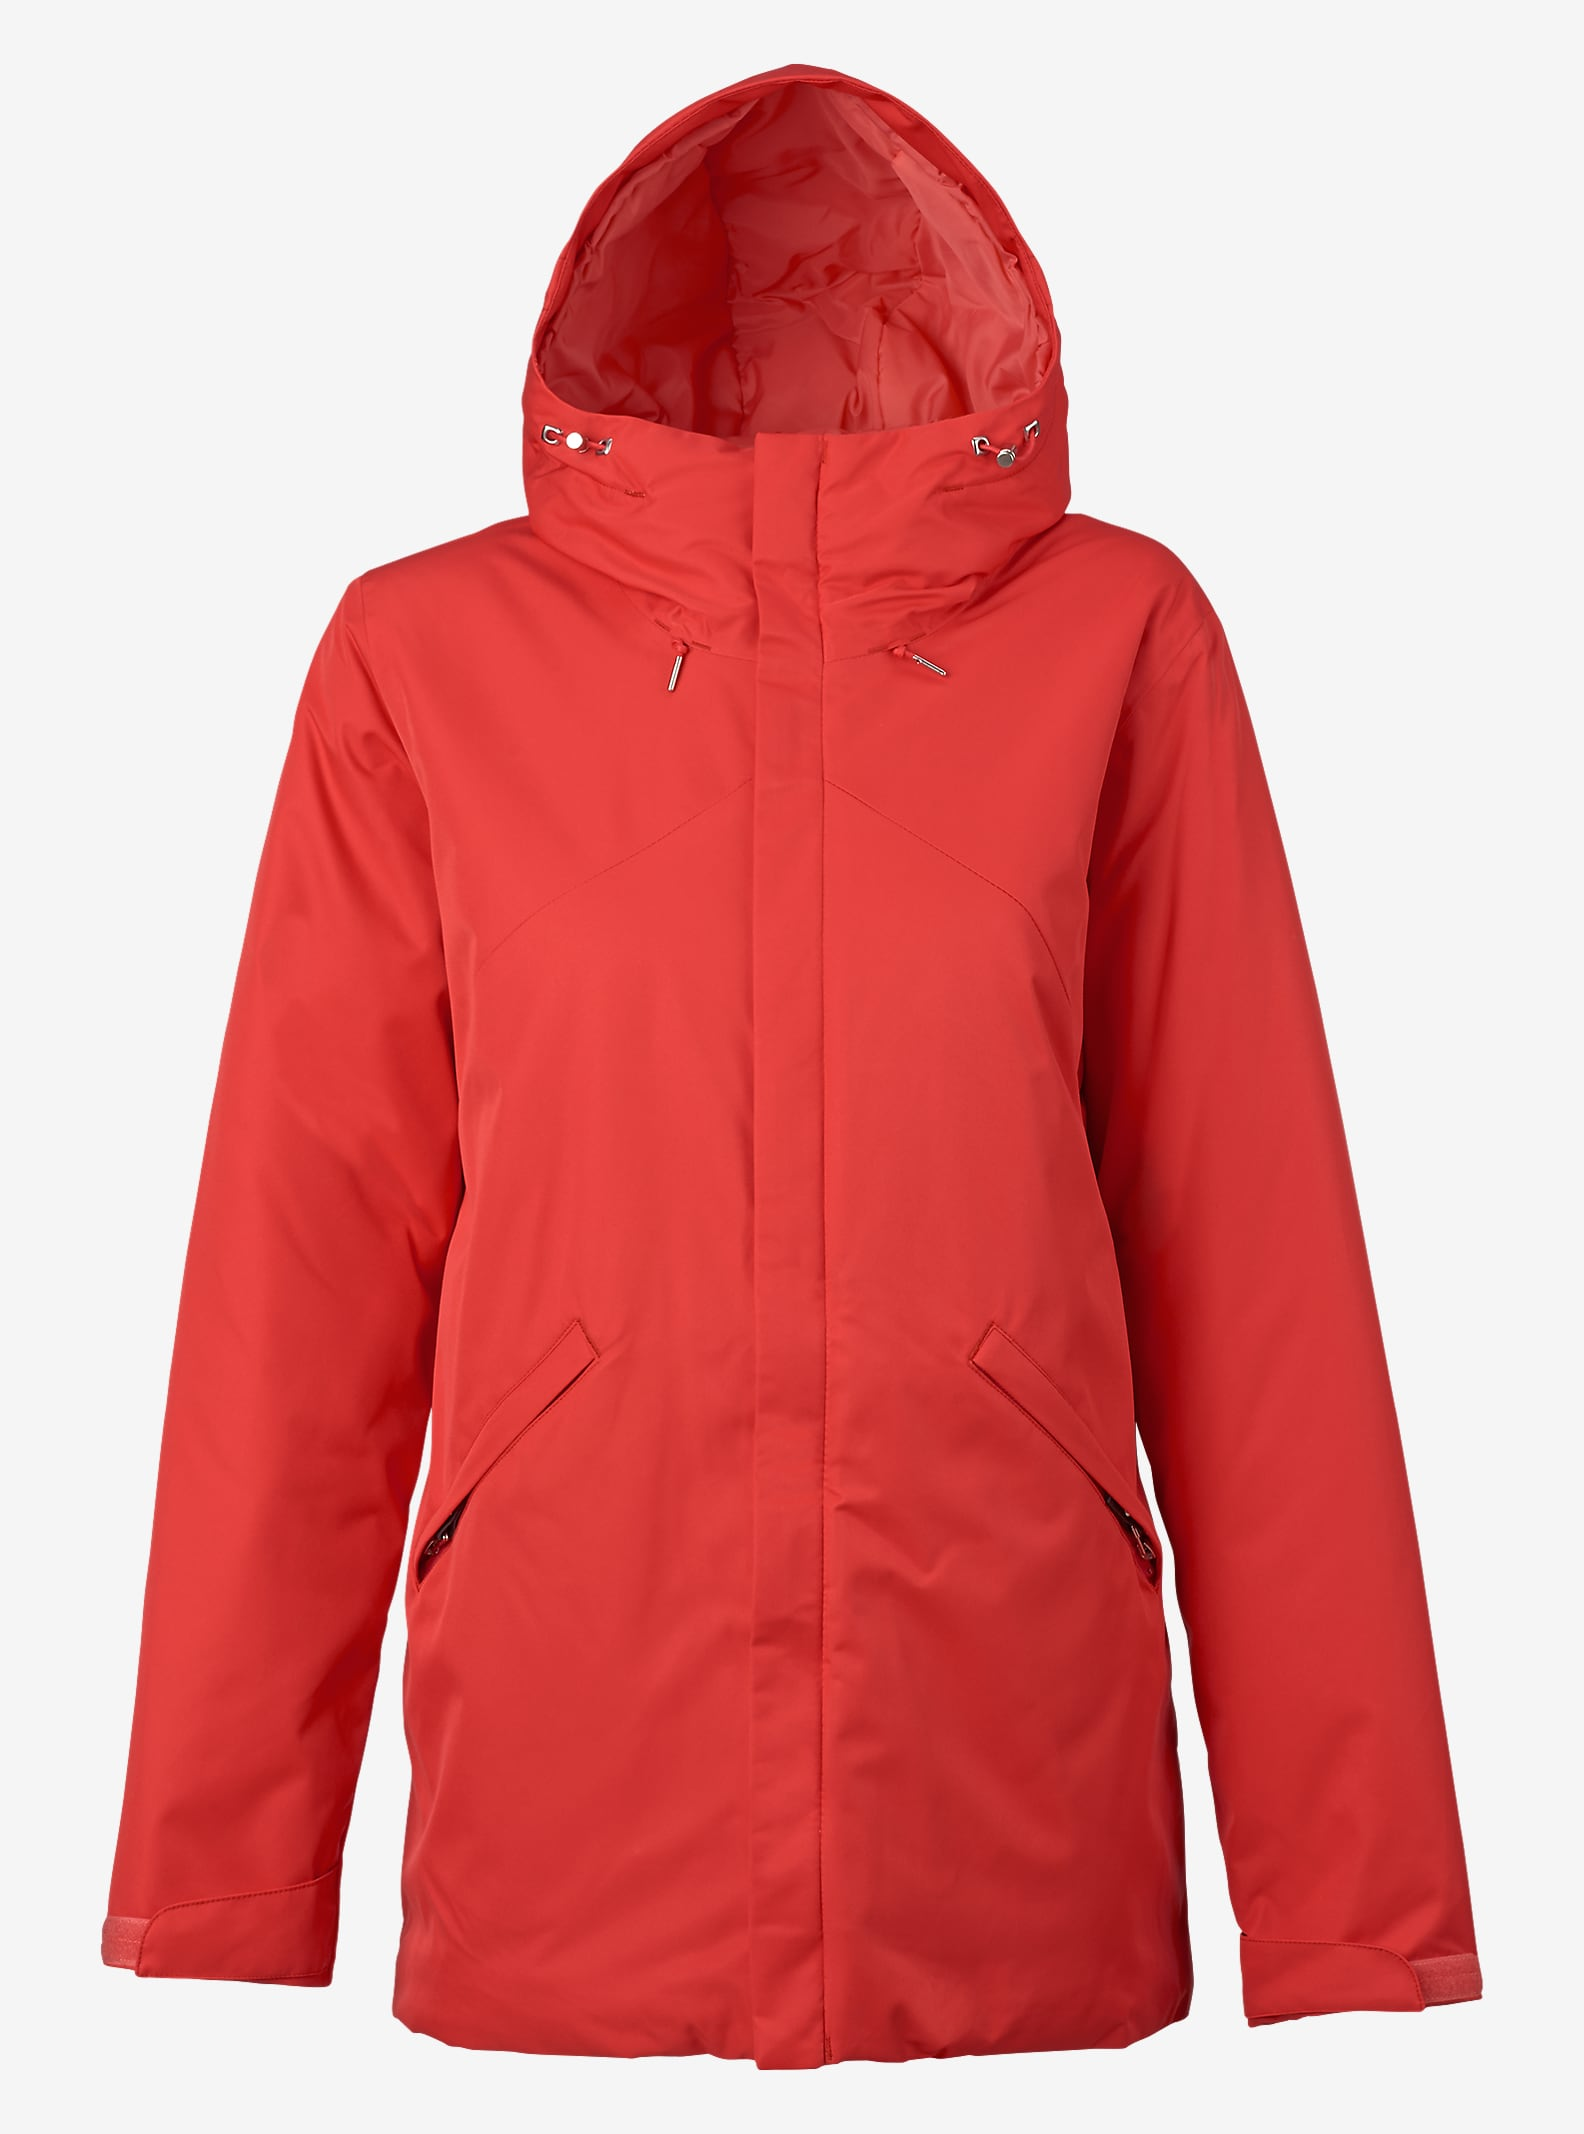 Burton Cadence Jacket shown in Coral